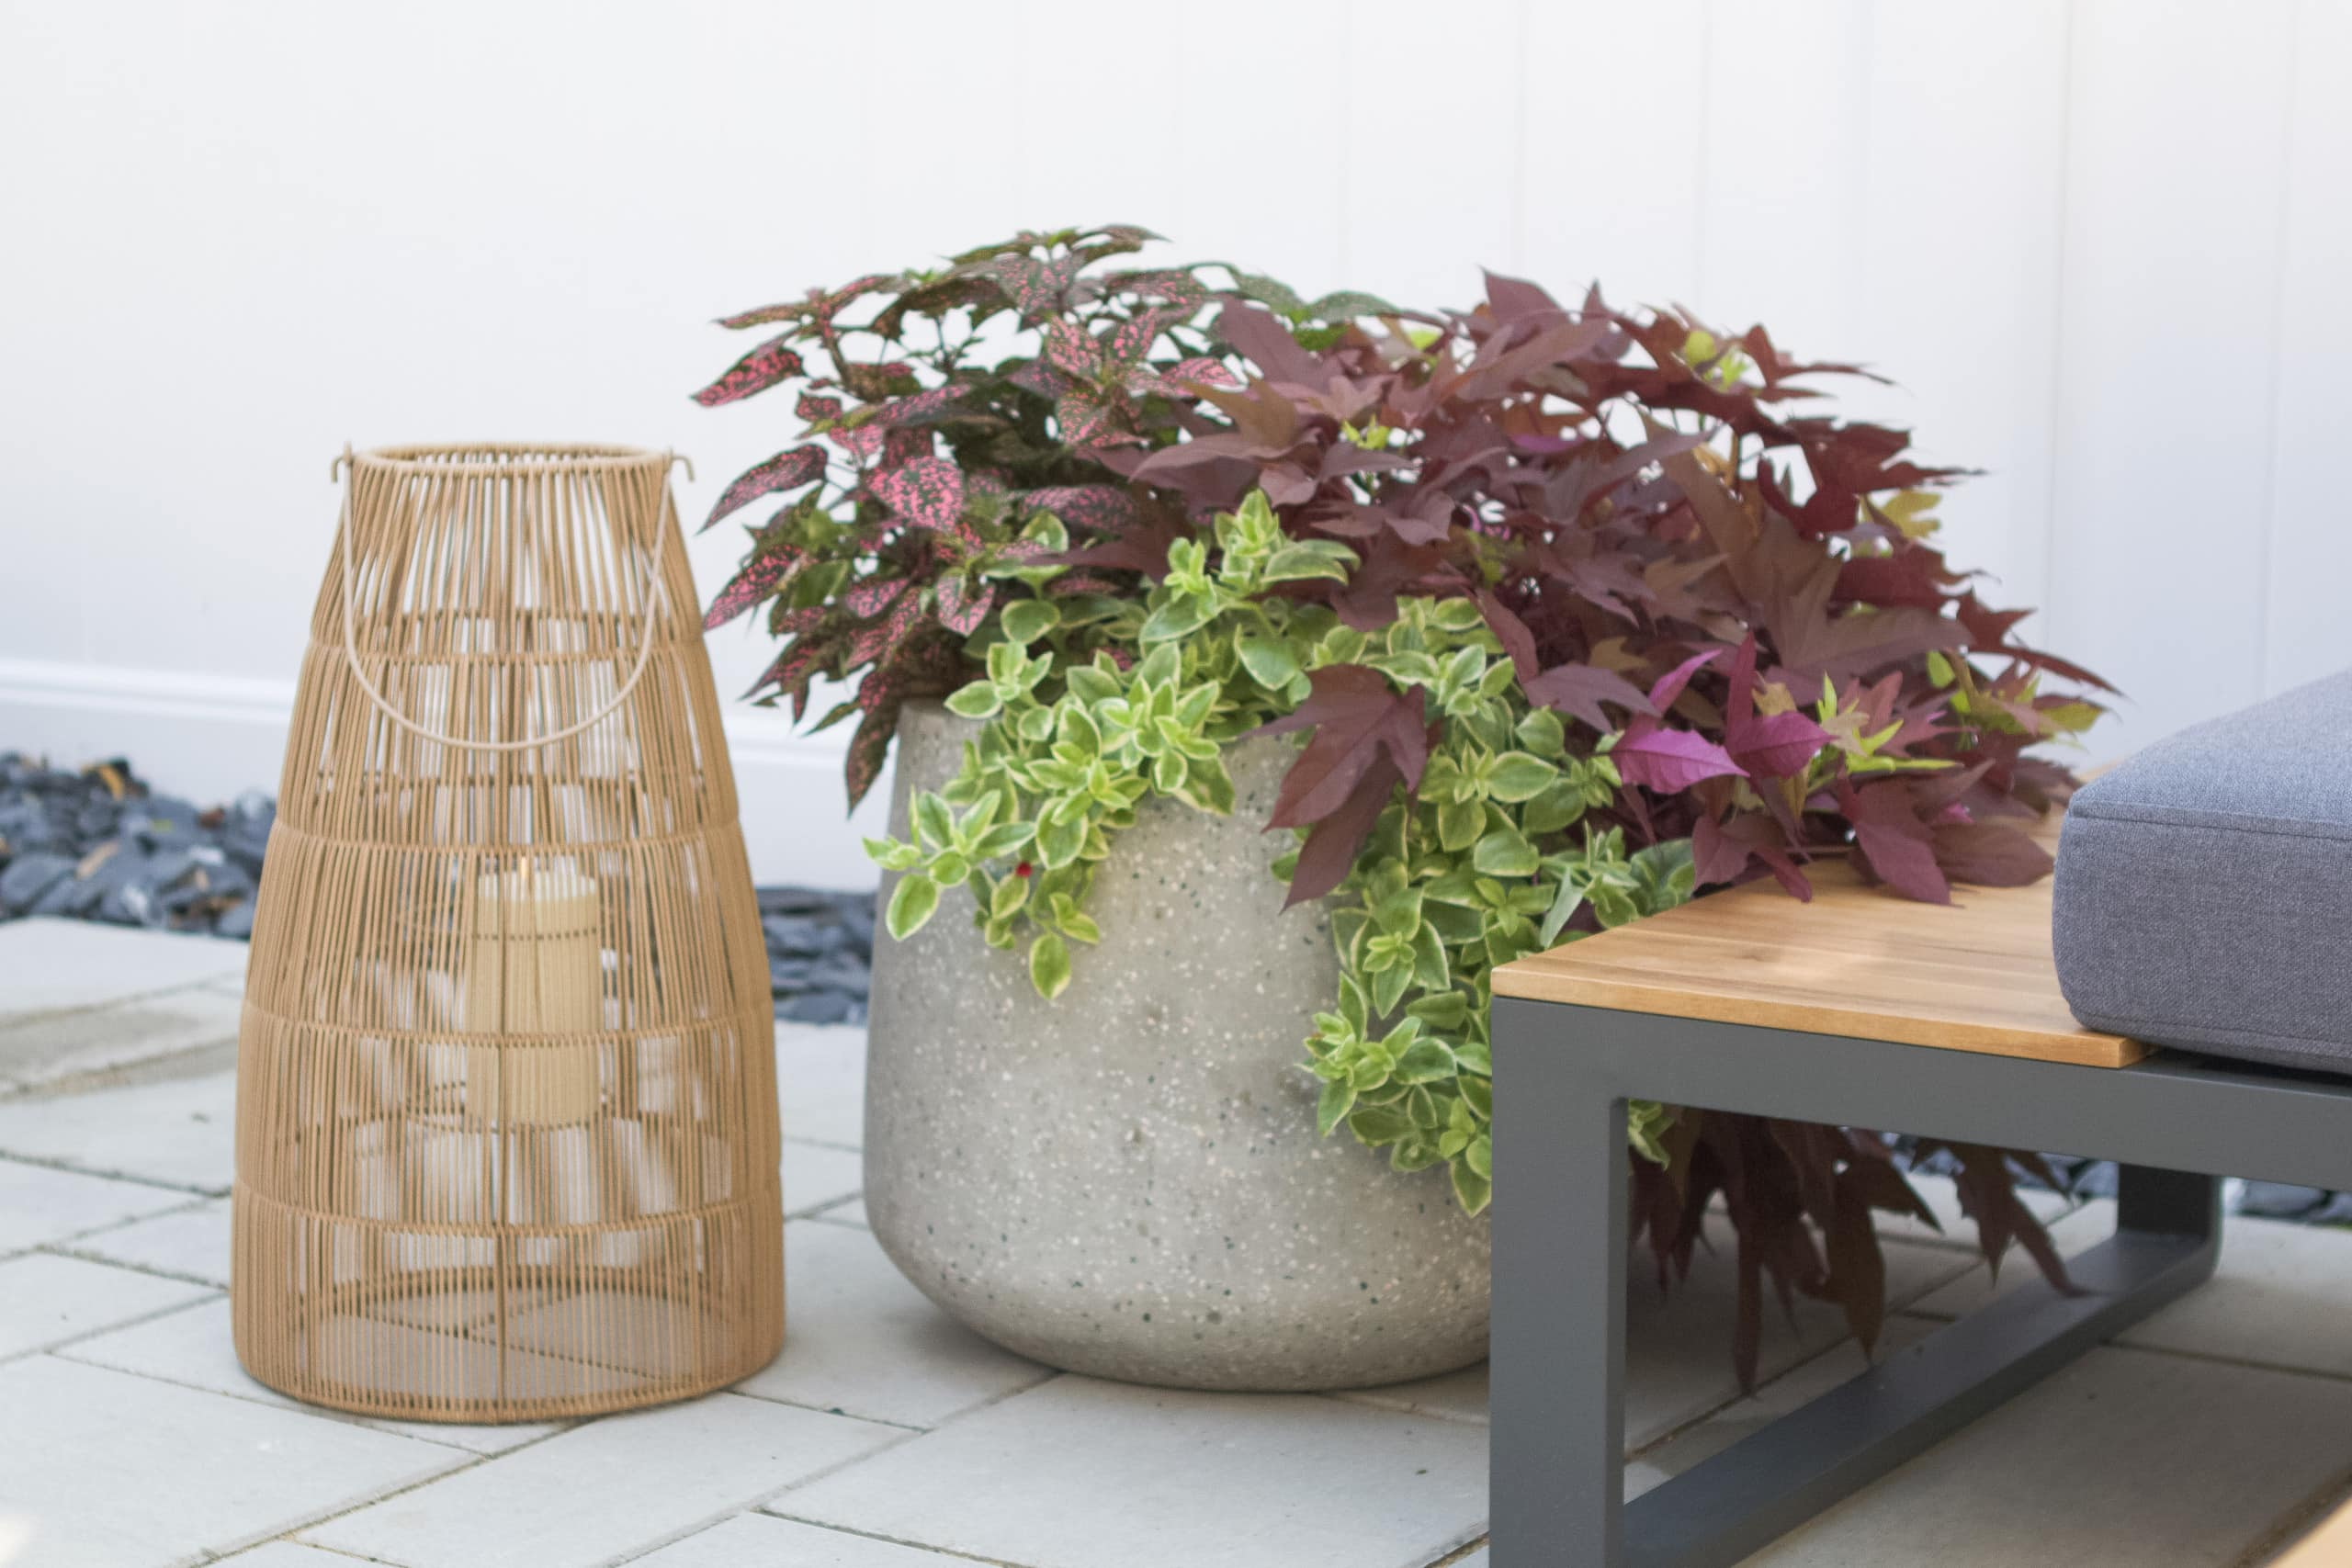 Large planters and lantern outdoor accessories